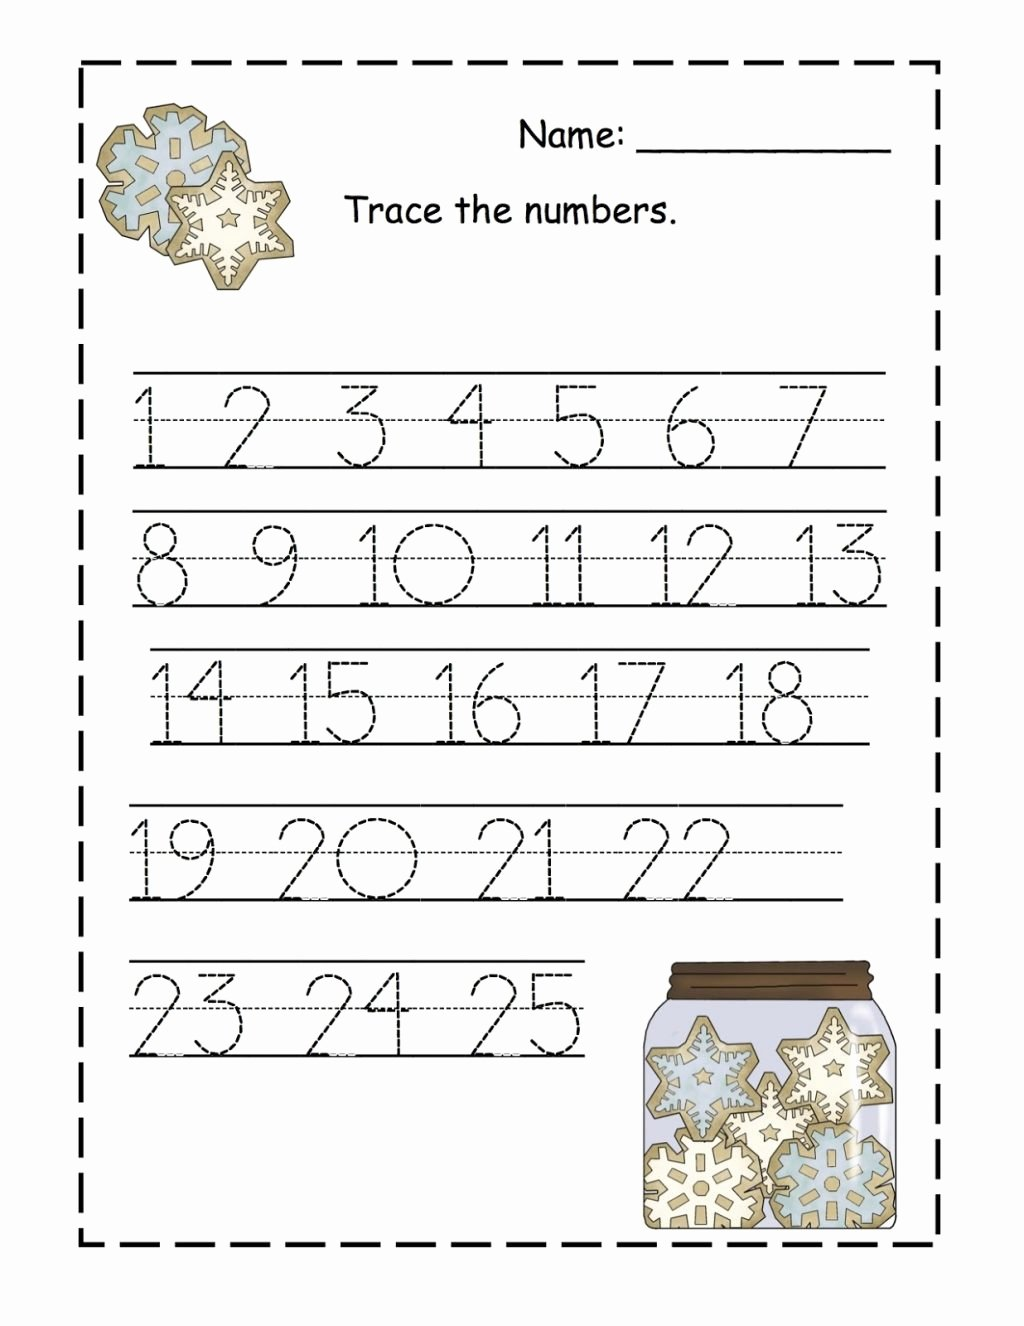 Number Tracing Worksheets for Preschoolers Ideas Worksheet Worksheet Free Tracing Worksheets astonishing